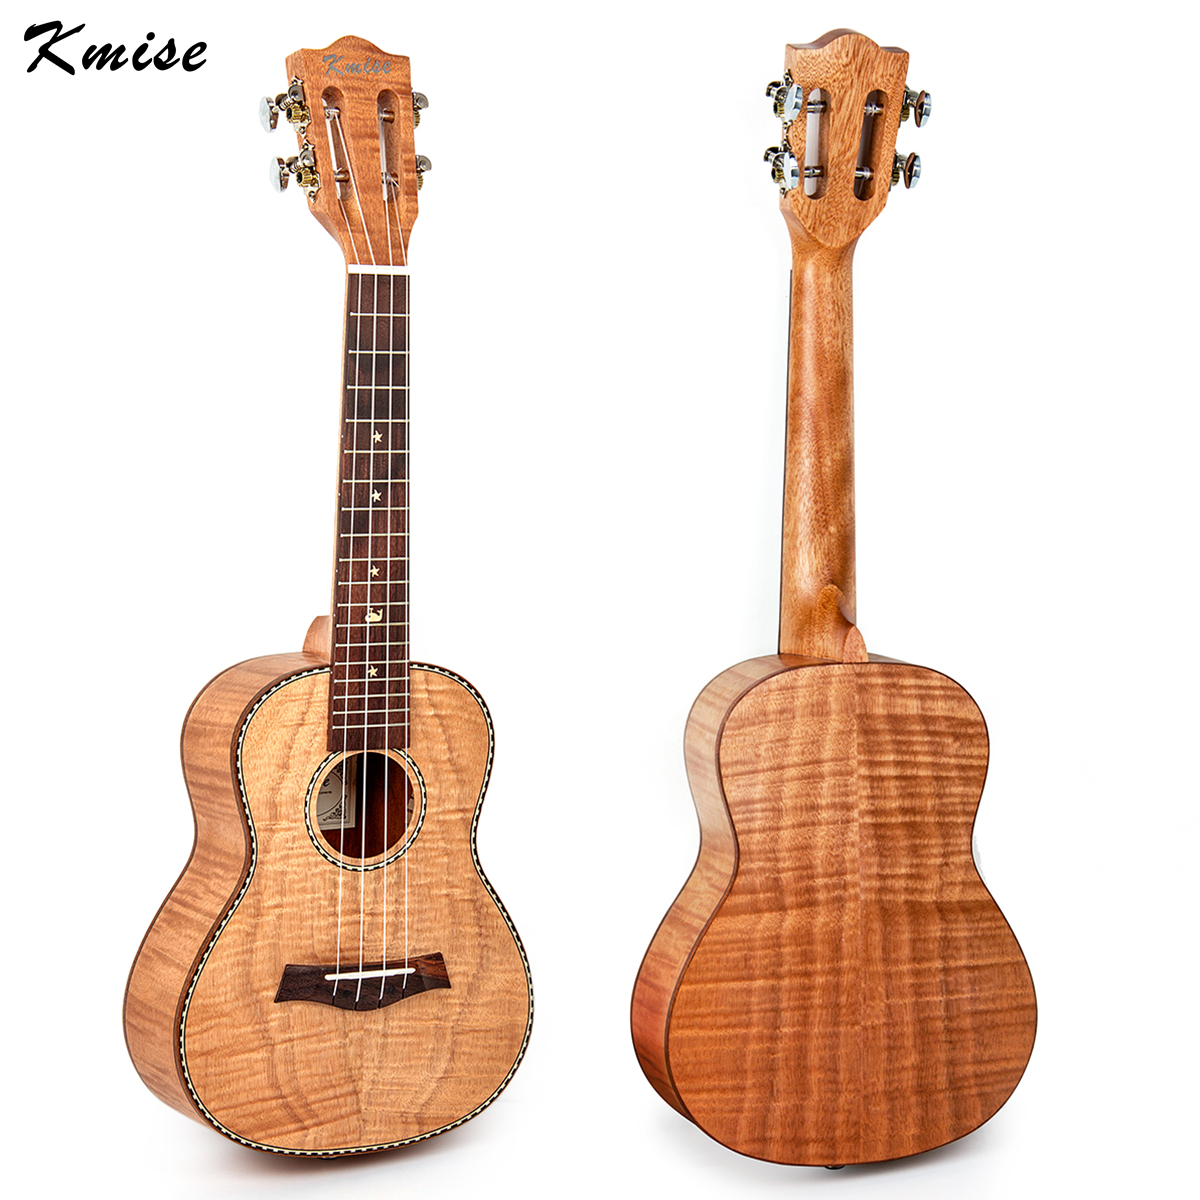 Kmise Concert Ukulele Solid Tiger Flame Okoume Classical Guitar Head 23 inch Ukelele Ukelele 4 String Hawaii Guitar concert ukulele kmise uke 23 inch basswood black tint satin 4 string hawaii guitar with gig bag tuner